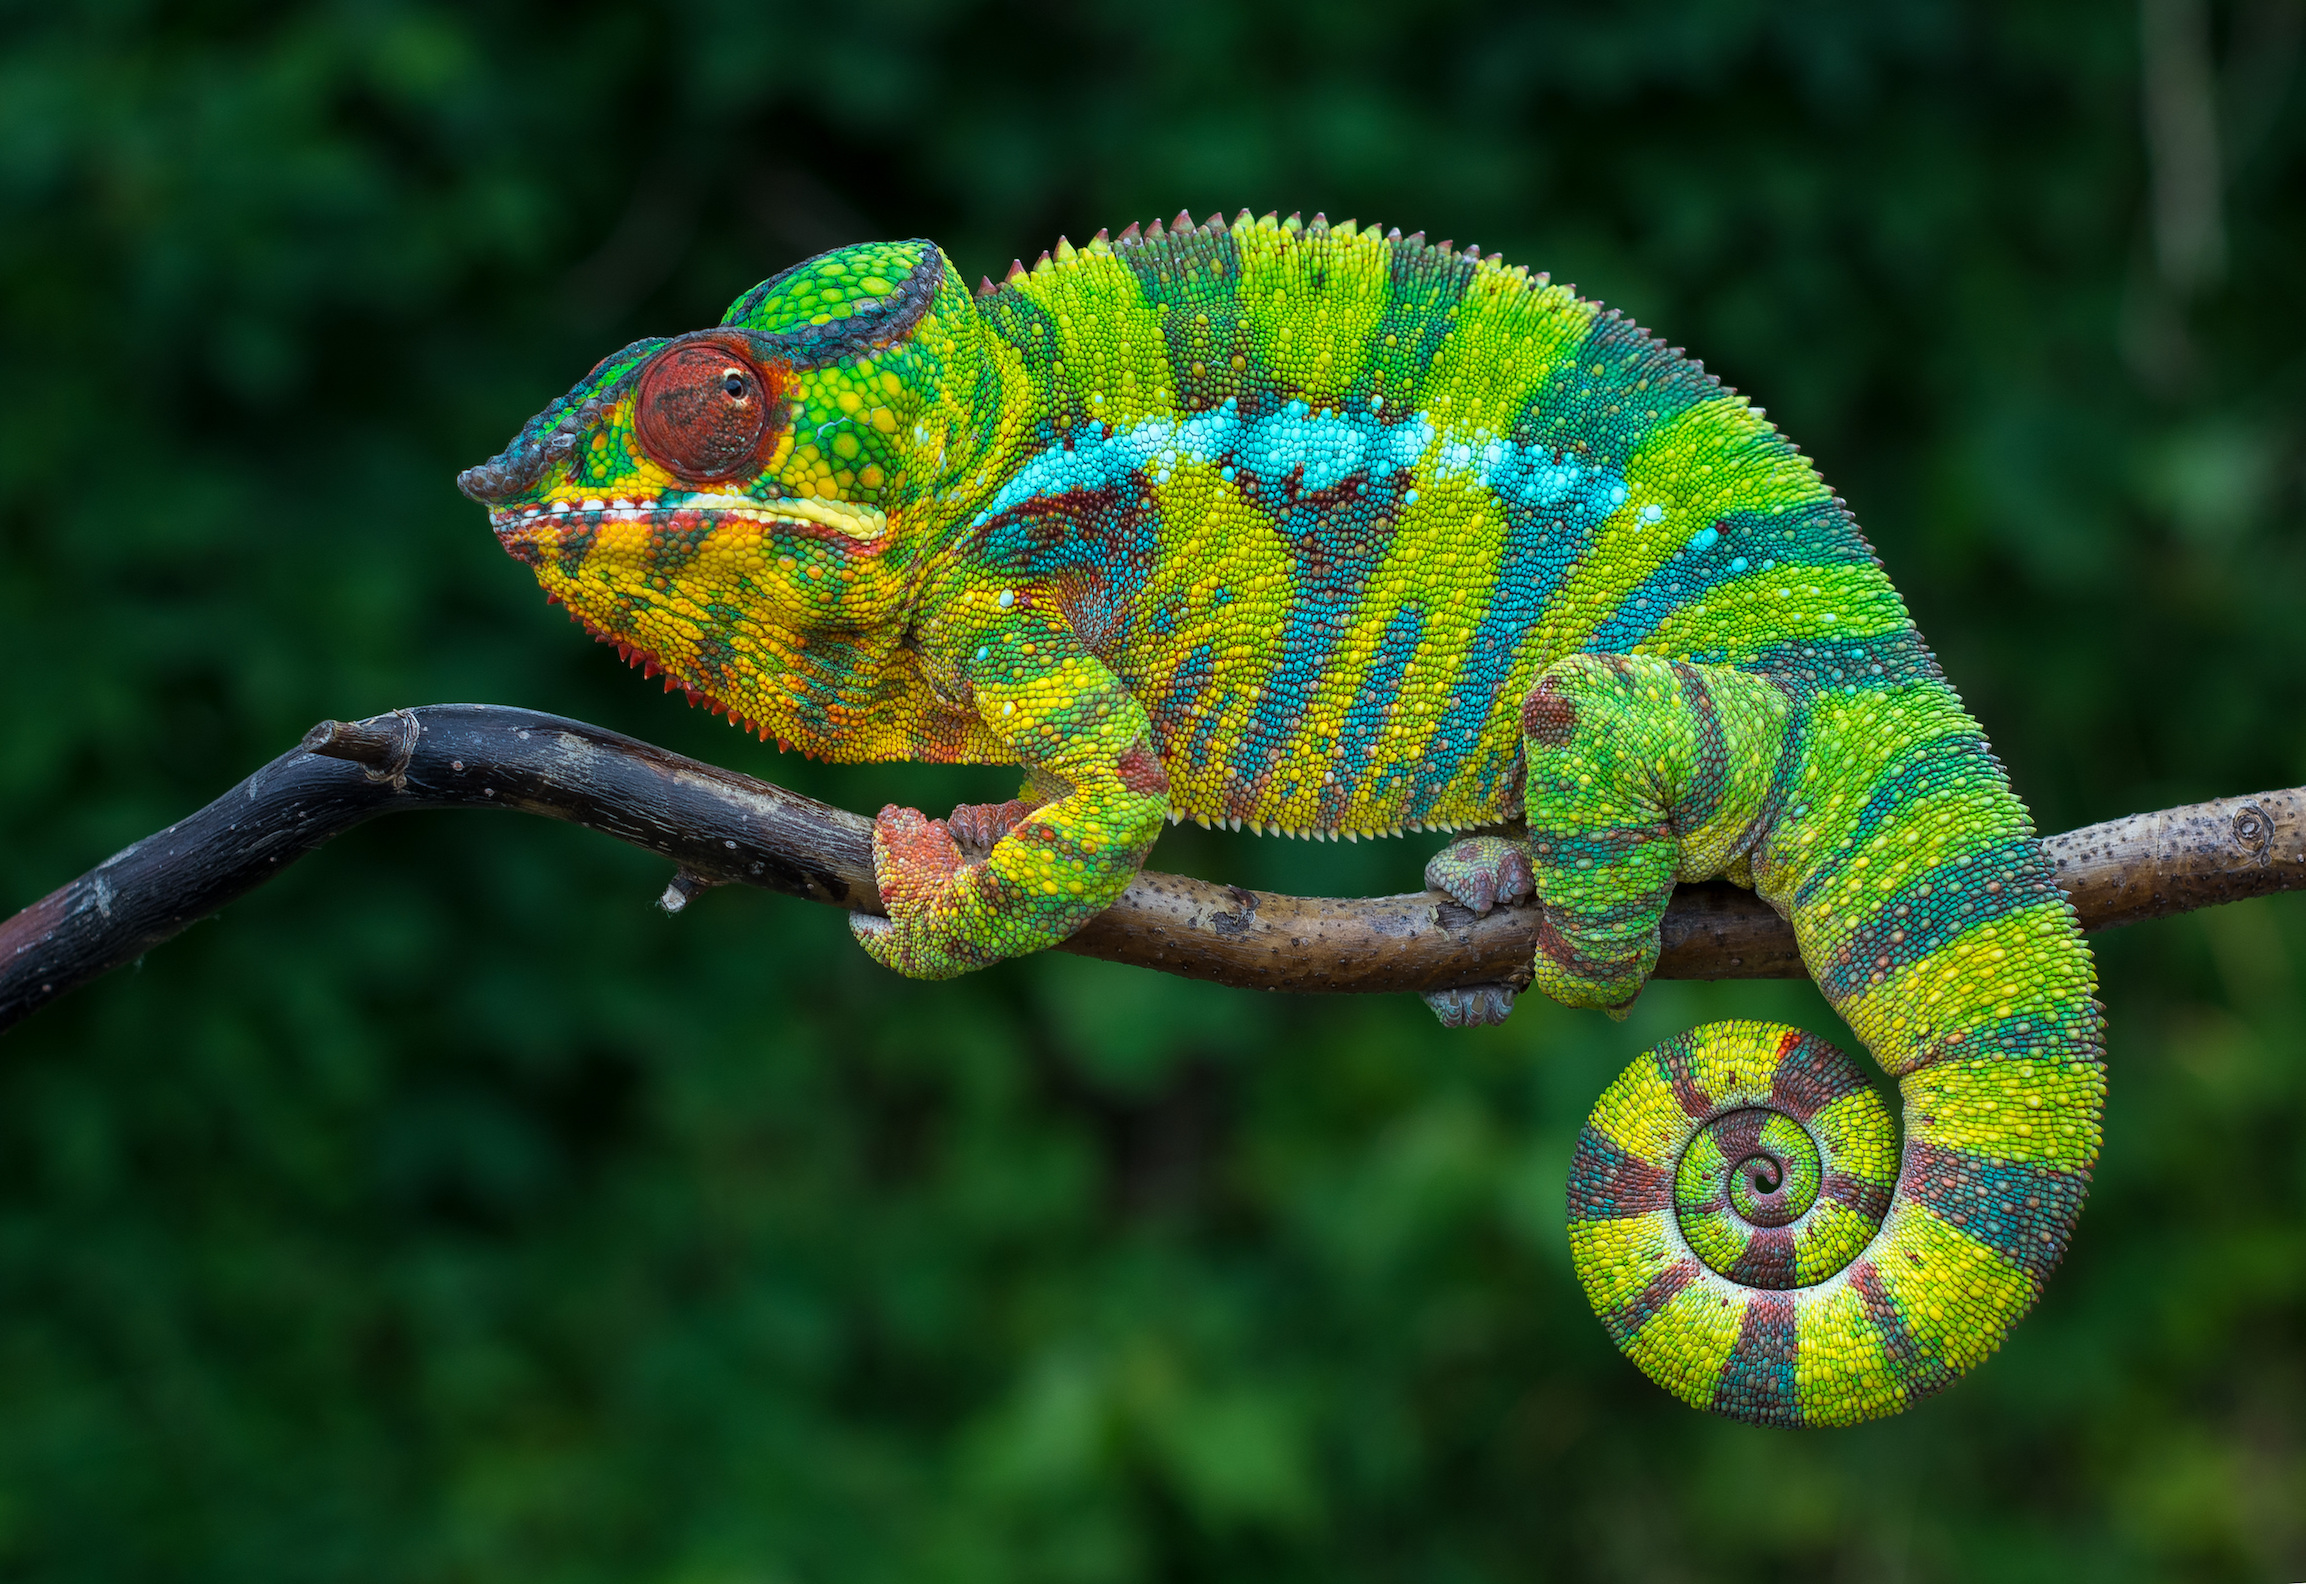 Researchers at Nagoya University have developed a composite material that can mimic the vibrant color changes of chameleons.